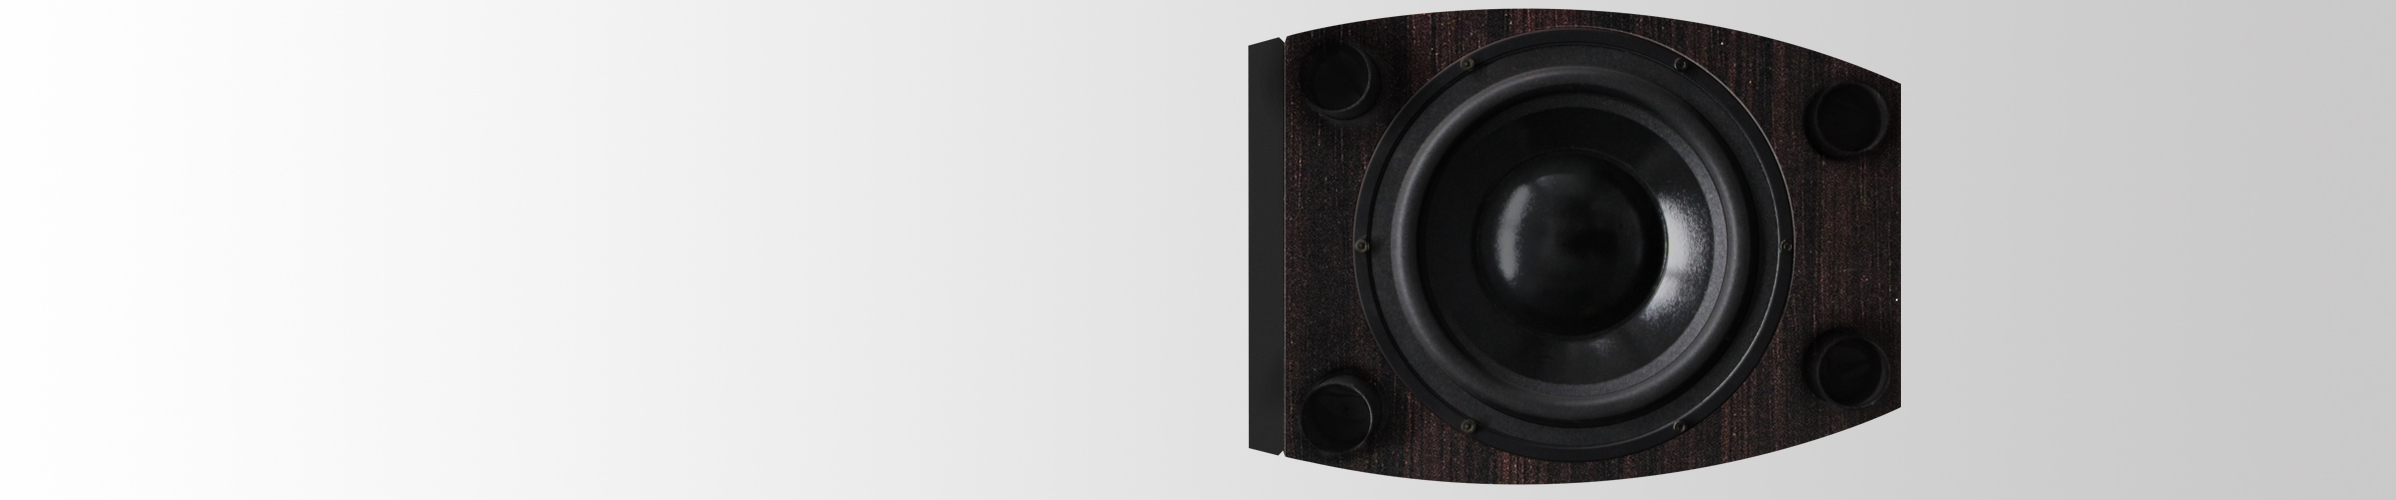 XLBPHTB-DW-KIT speakers down-firing subwoofer